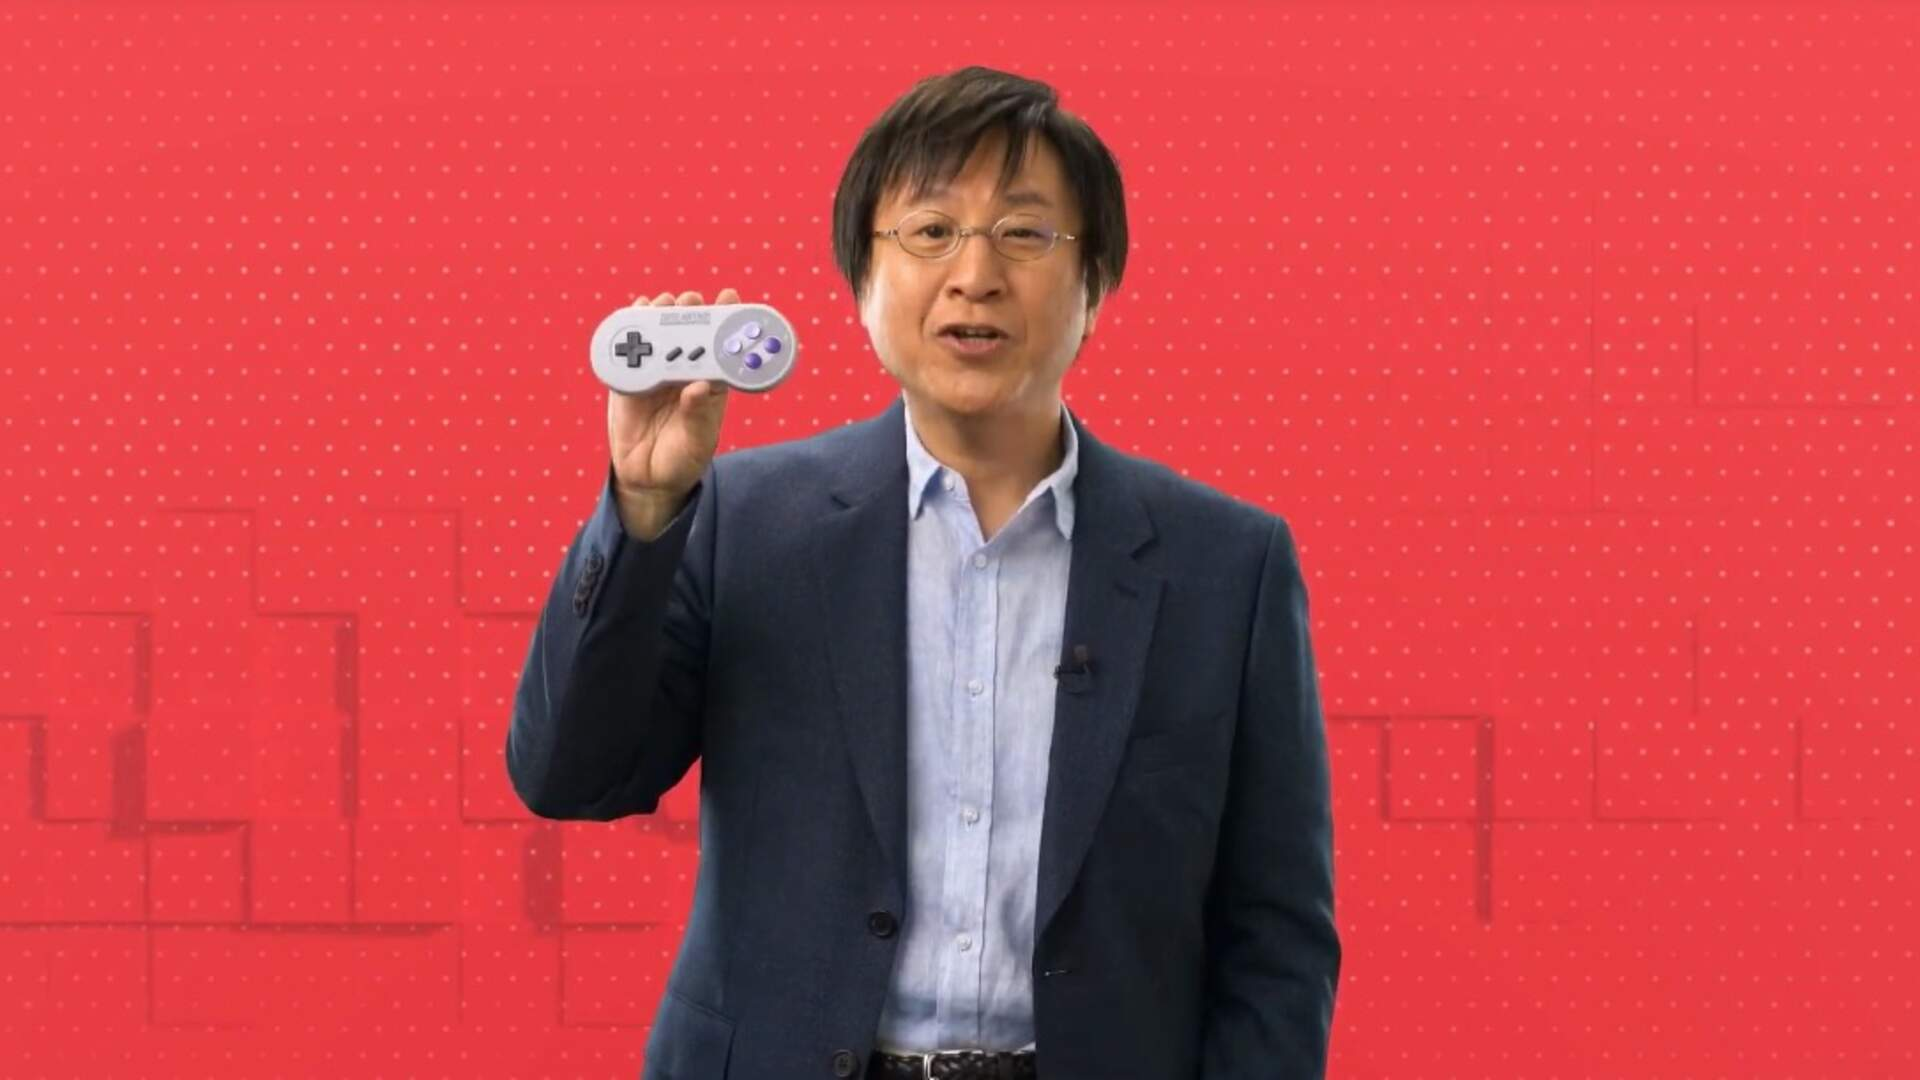 Nintendo Direct Recap: A Deluge of Ports From September 2019 Onward